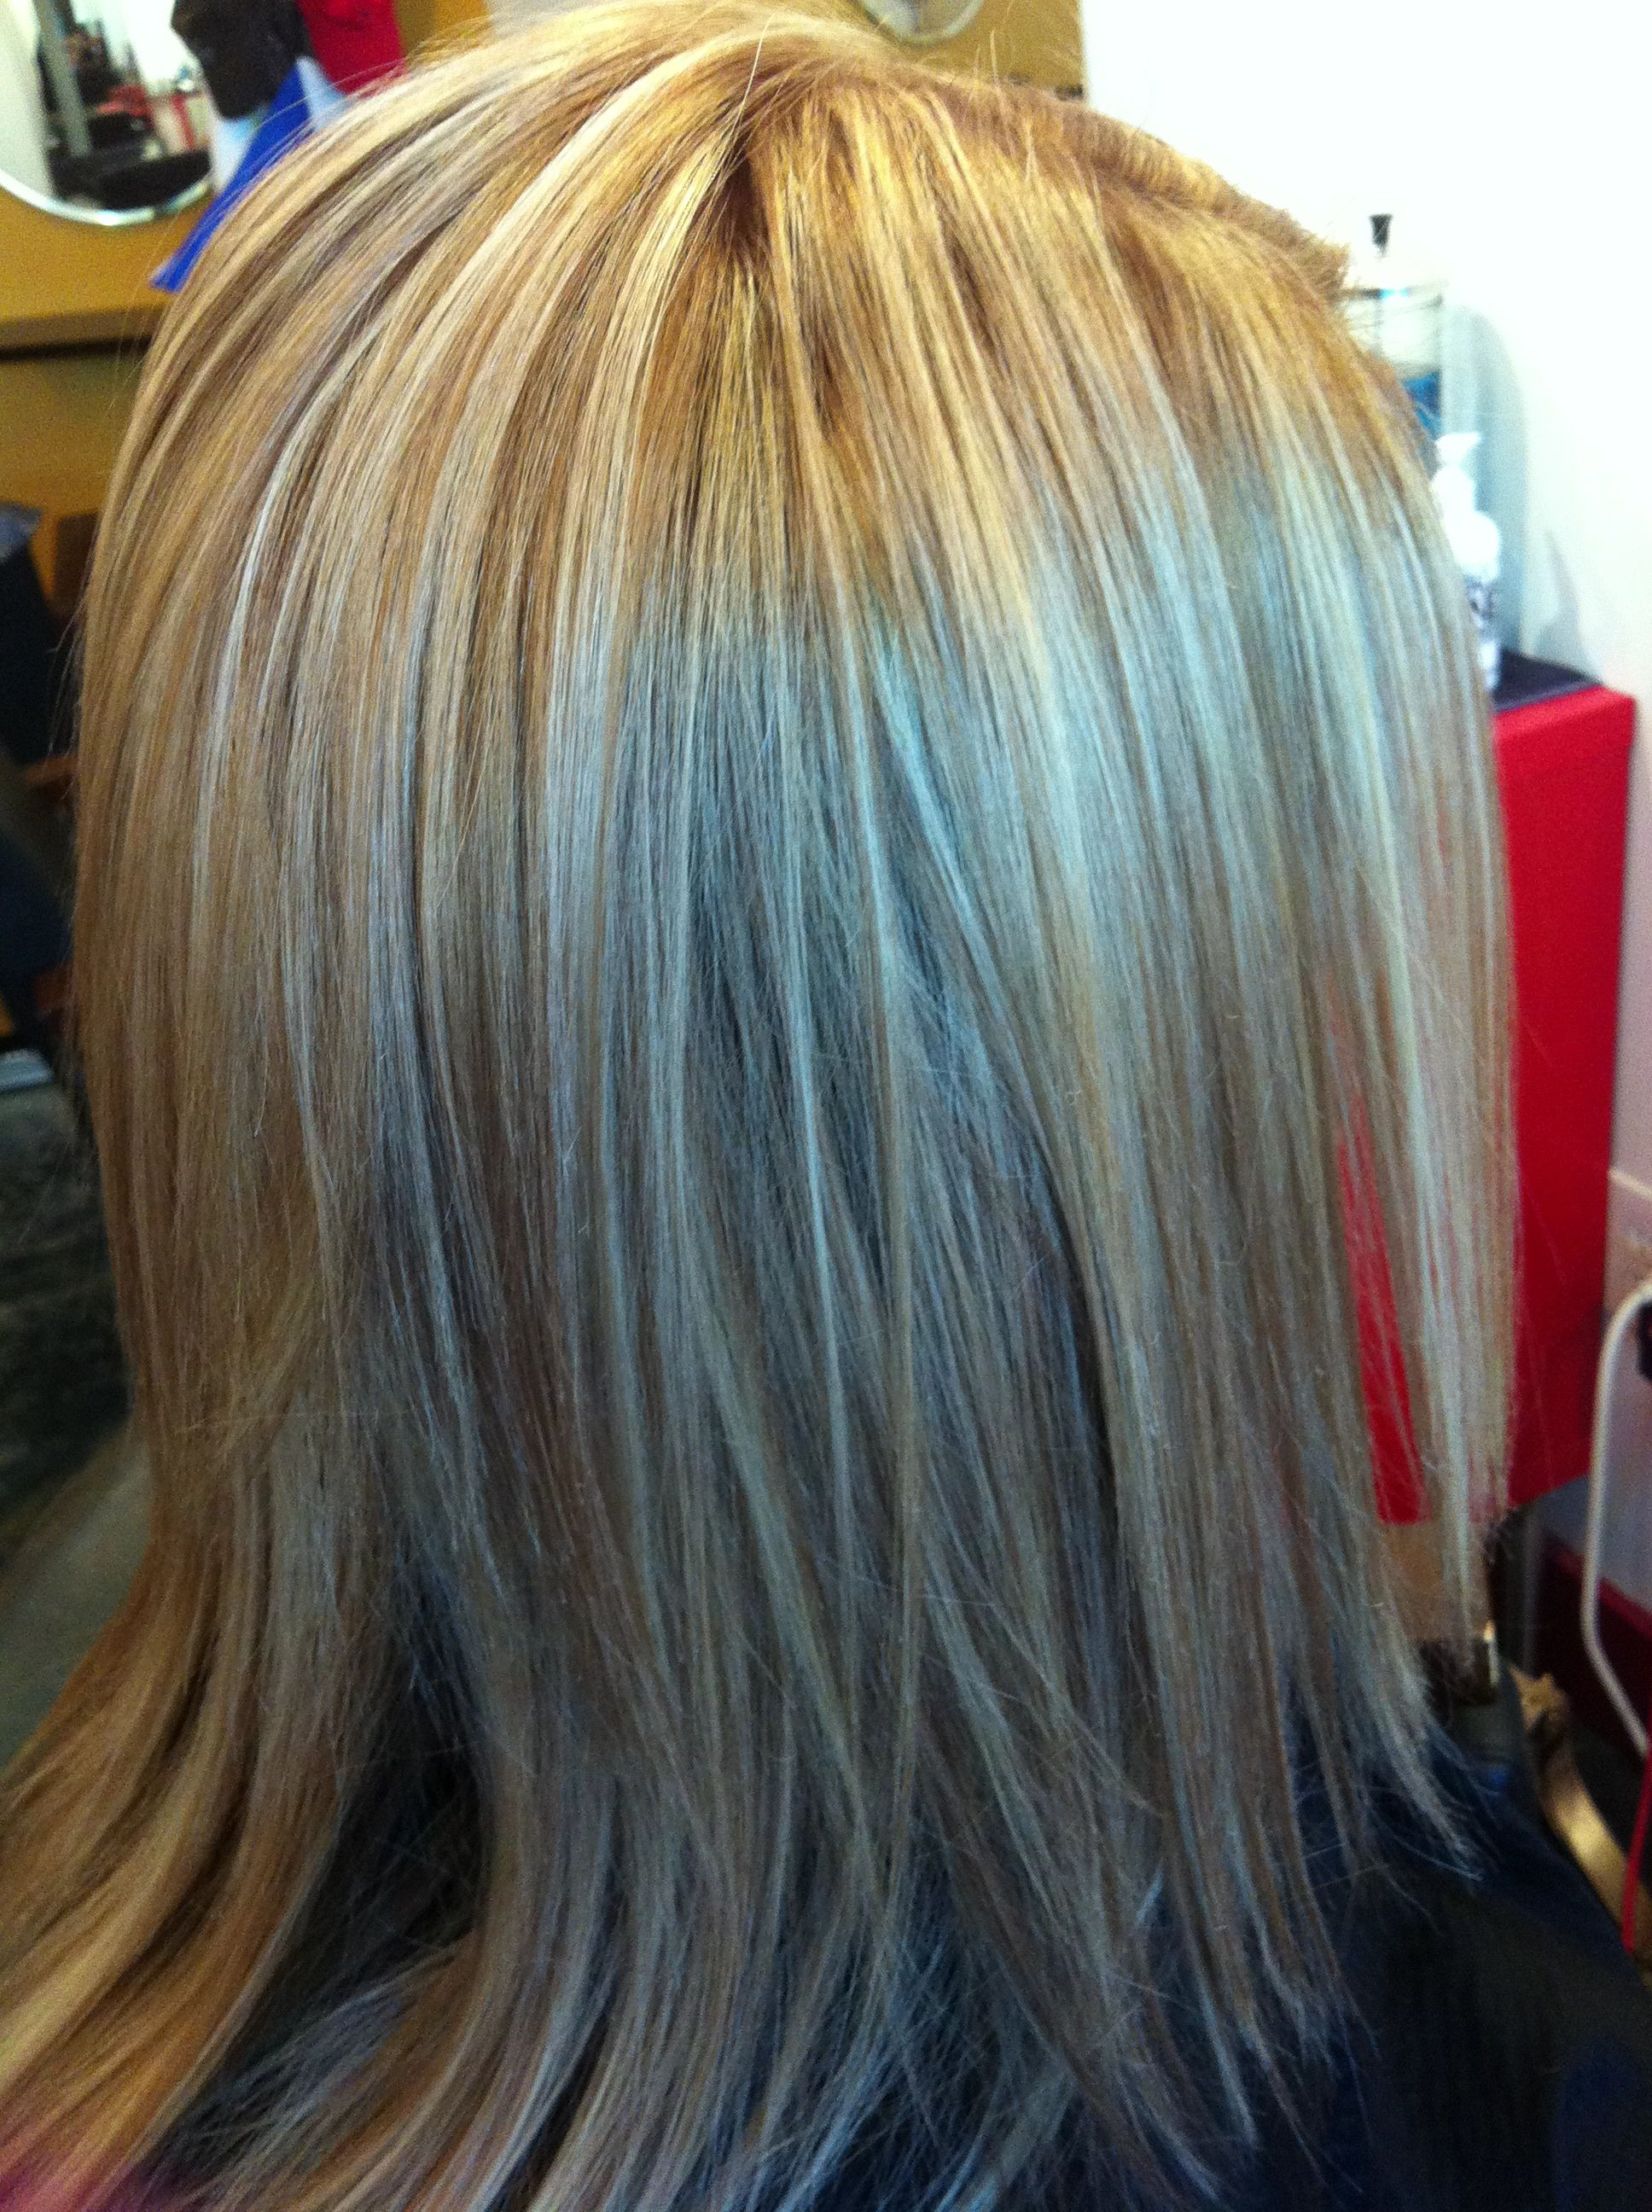 Highlights & low lights for fall!